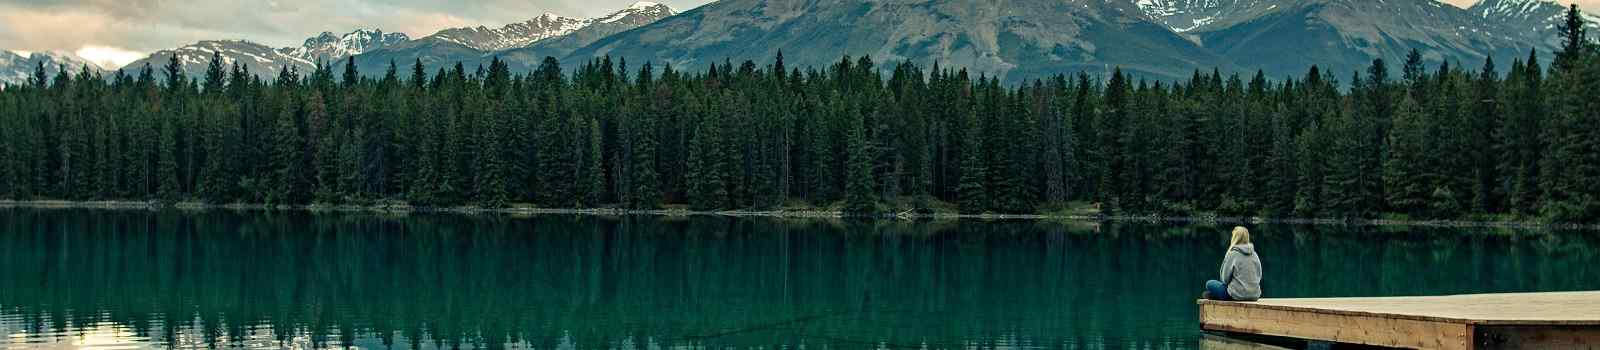 BUS-ERL-WCAD Enjoying the beautiful landscape by Annette Lake in Jasper National Park  Canadashutterstock 530657062